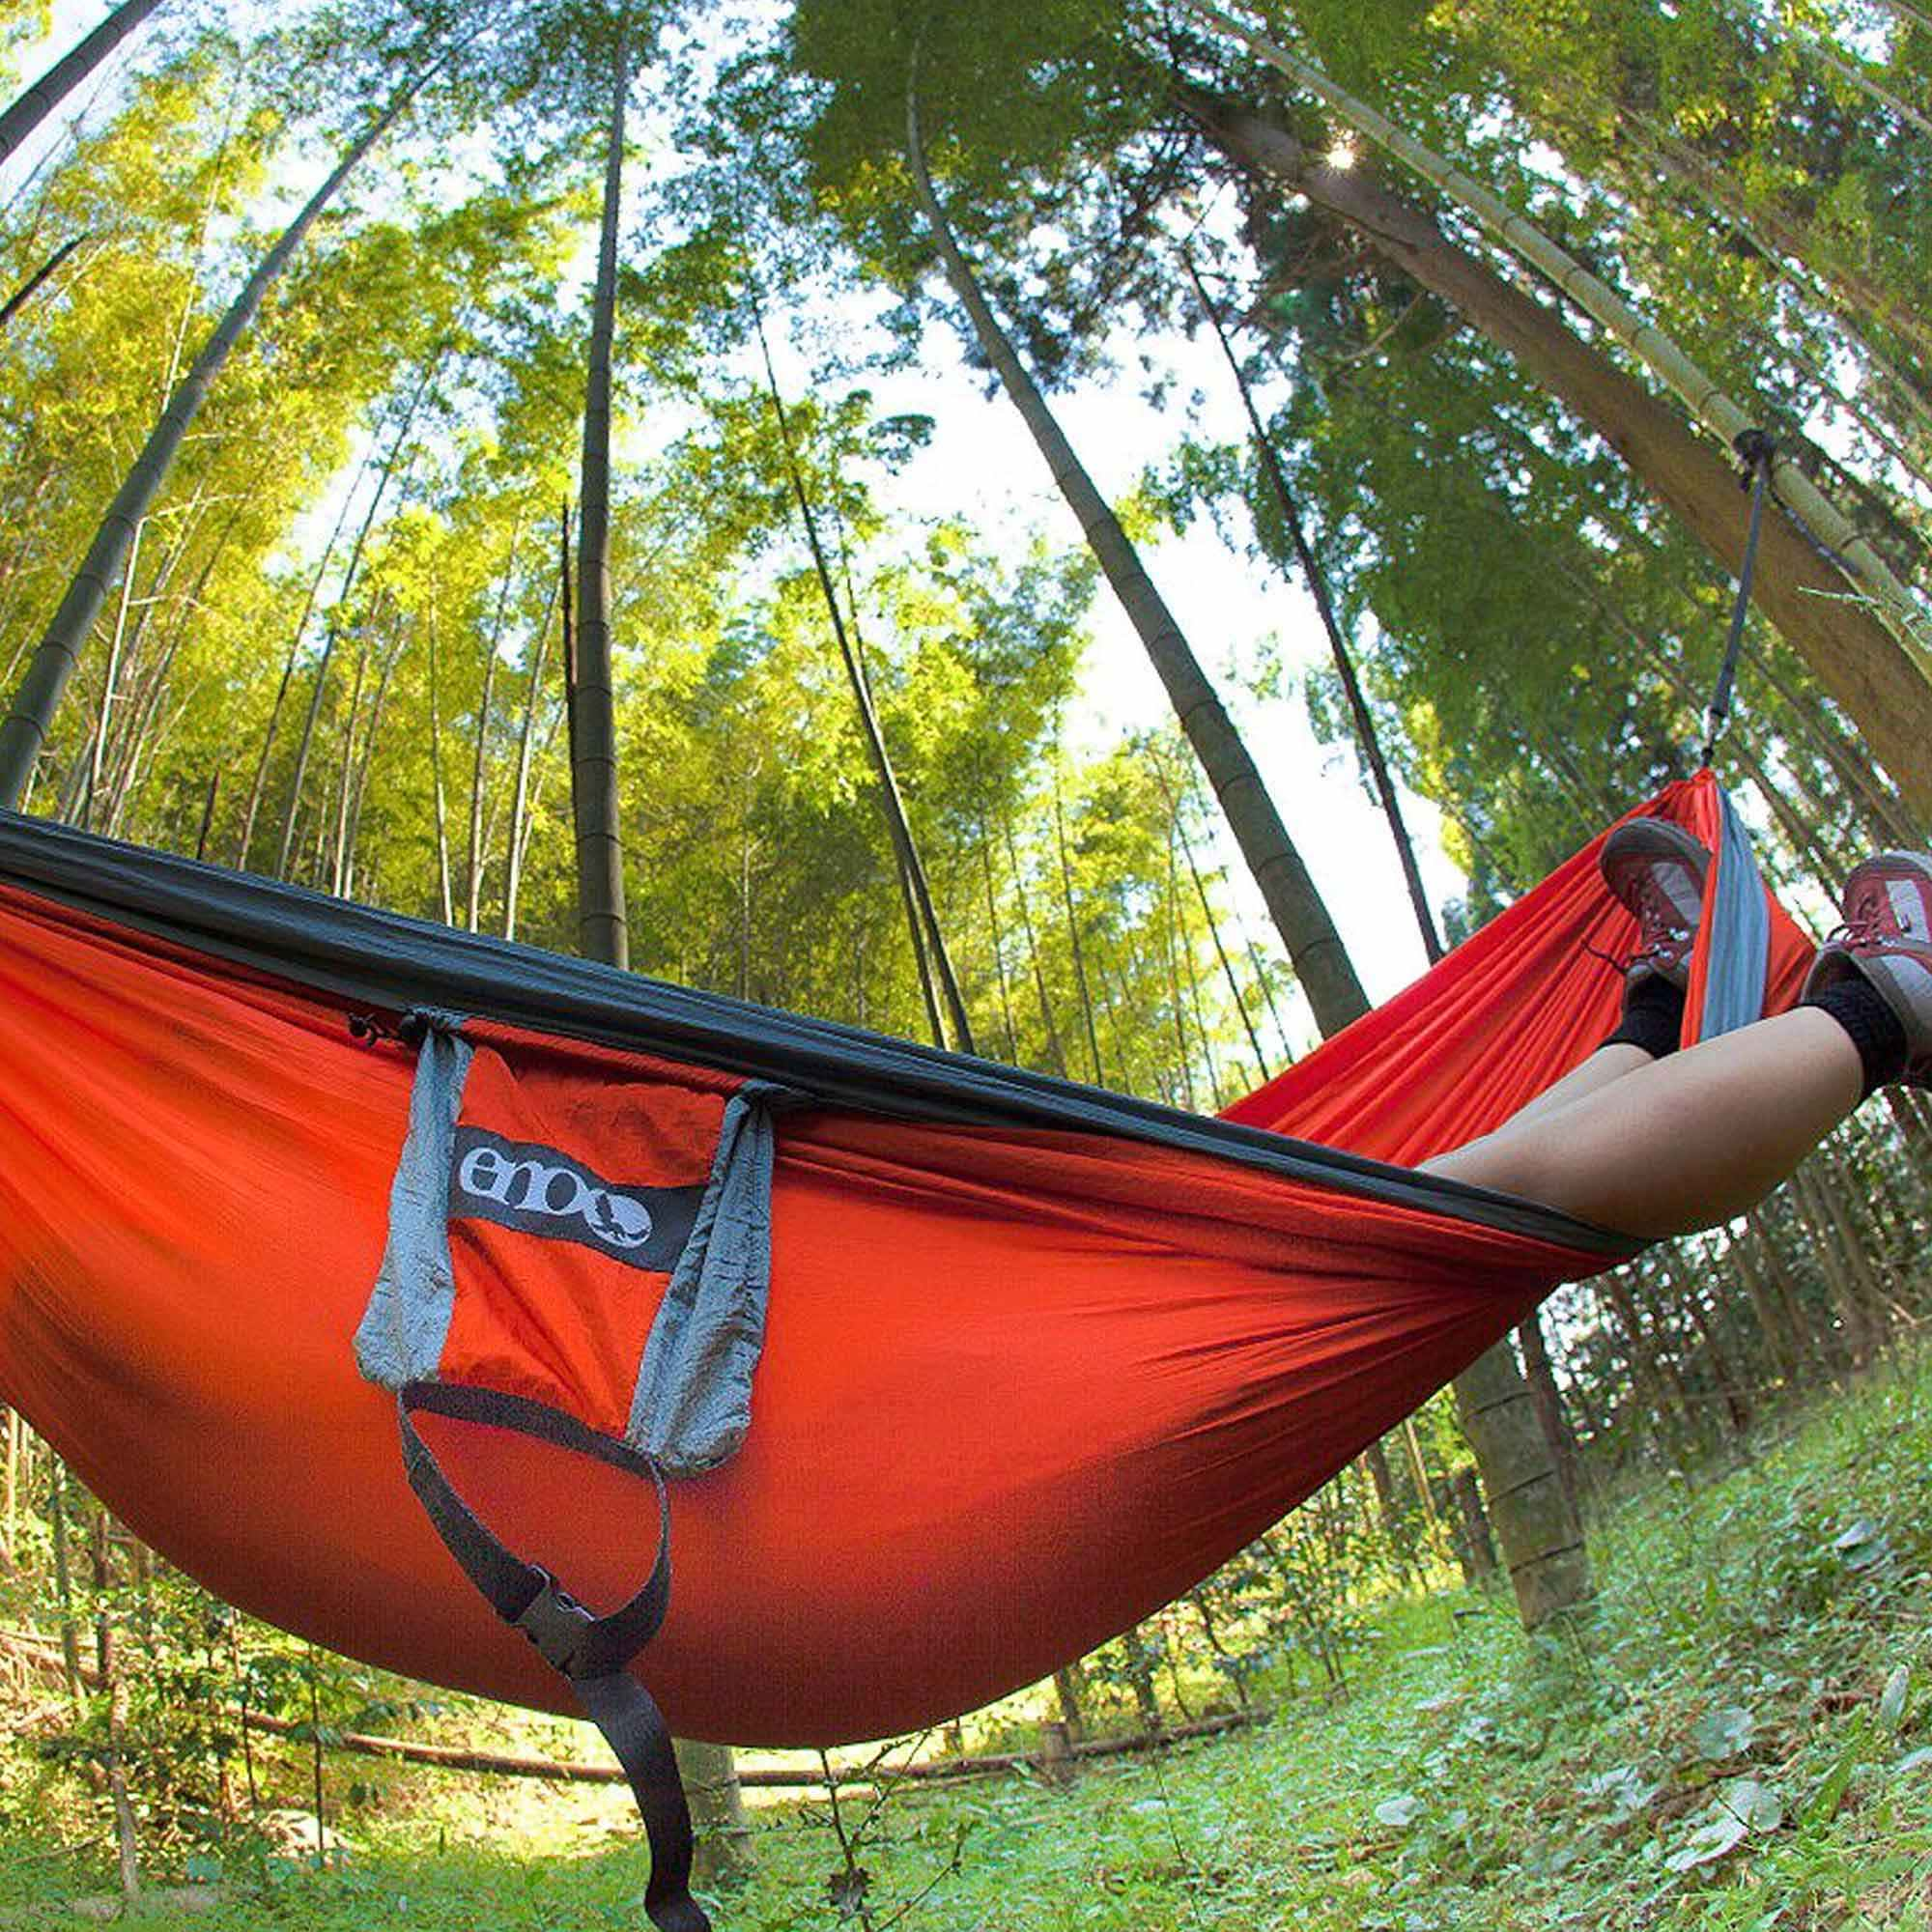 Eno Double Deluxe Camping Hammock Dfohome